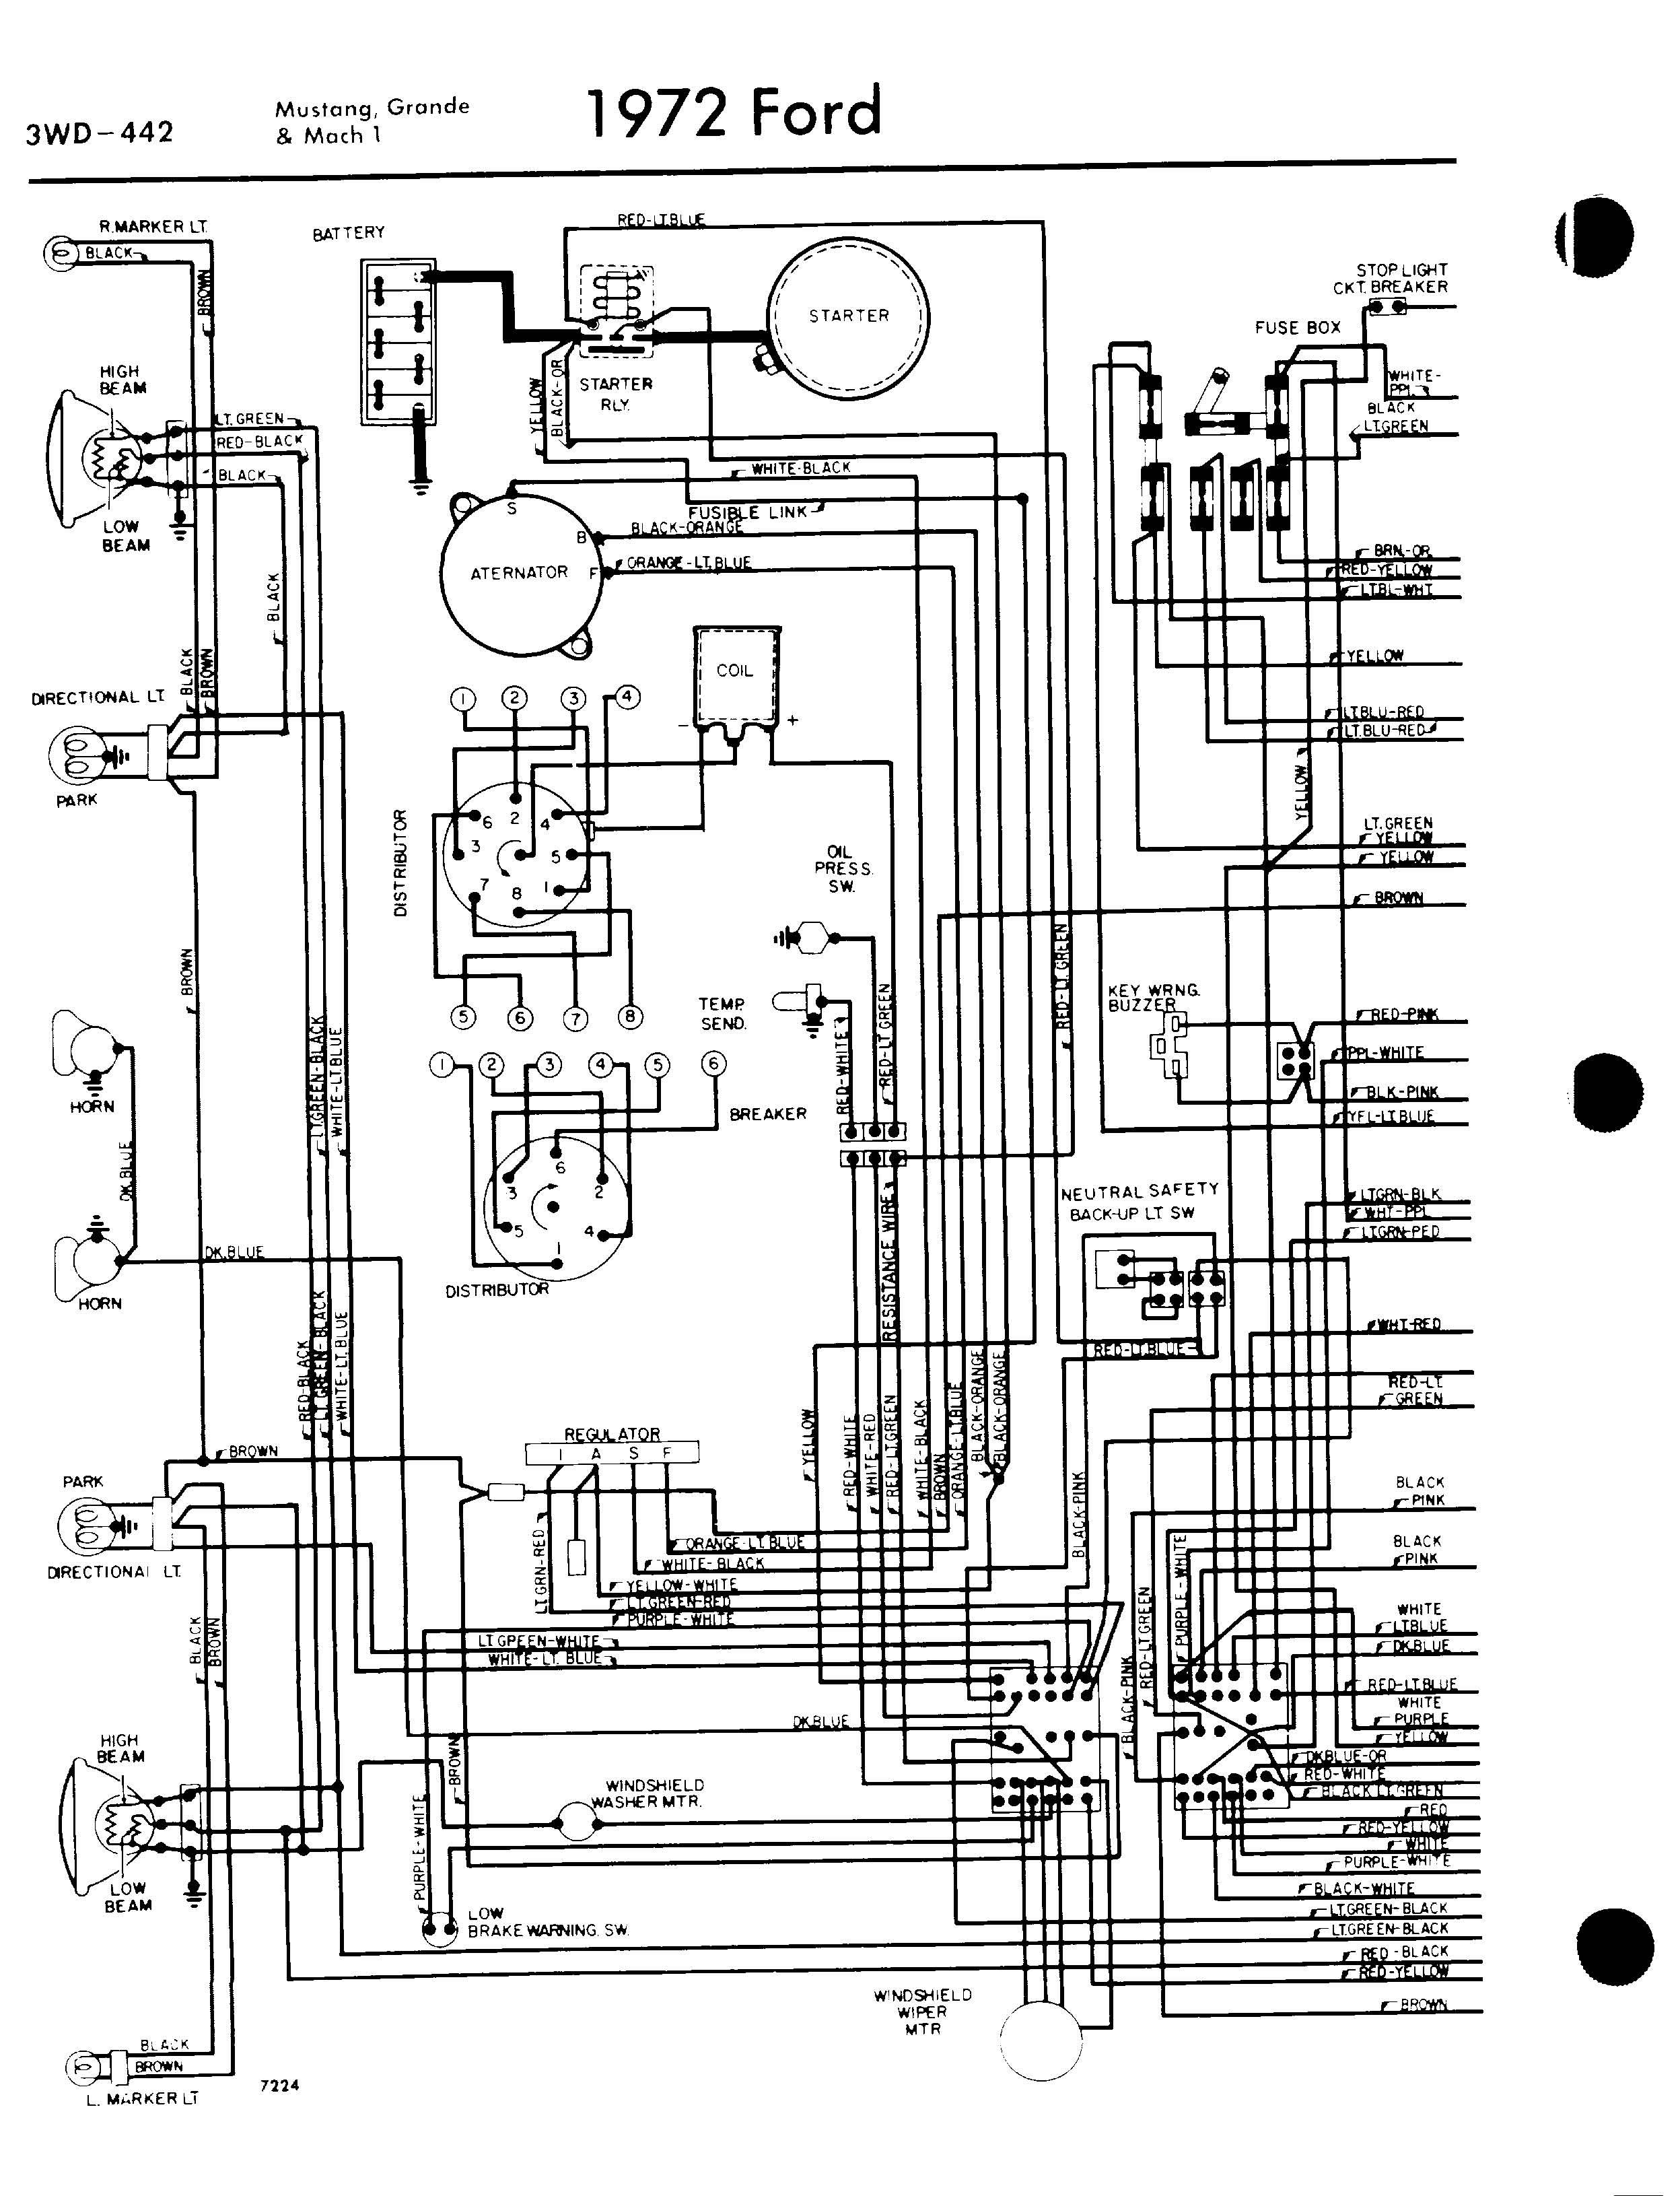 1971 Mach 1 Engine Wiring Harness Archive Of Automotive Lexus 1uz Alternator Diagram 72 Mach1 Wire Yahoo Search Results Rh Pinterest Fr